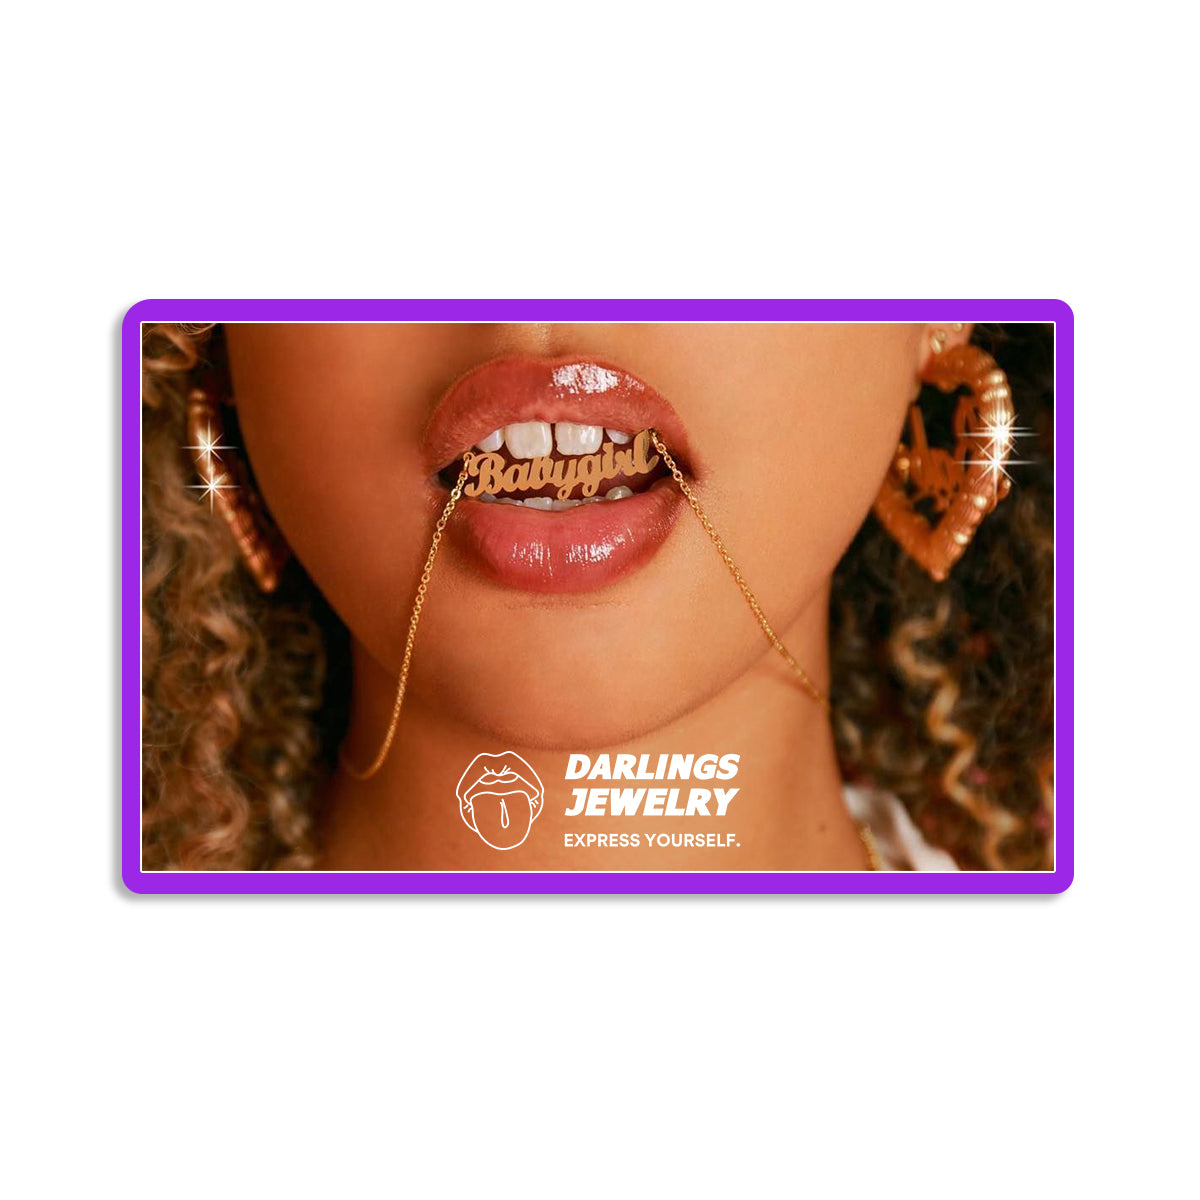 Digital Gift Card - Darlings Jewelry | Express Yourself Through Bling!